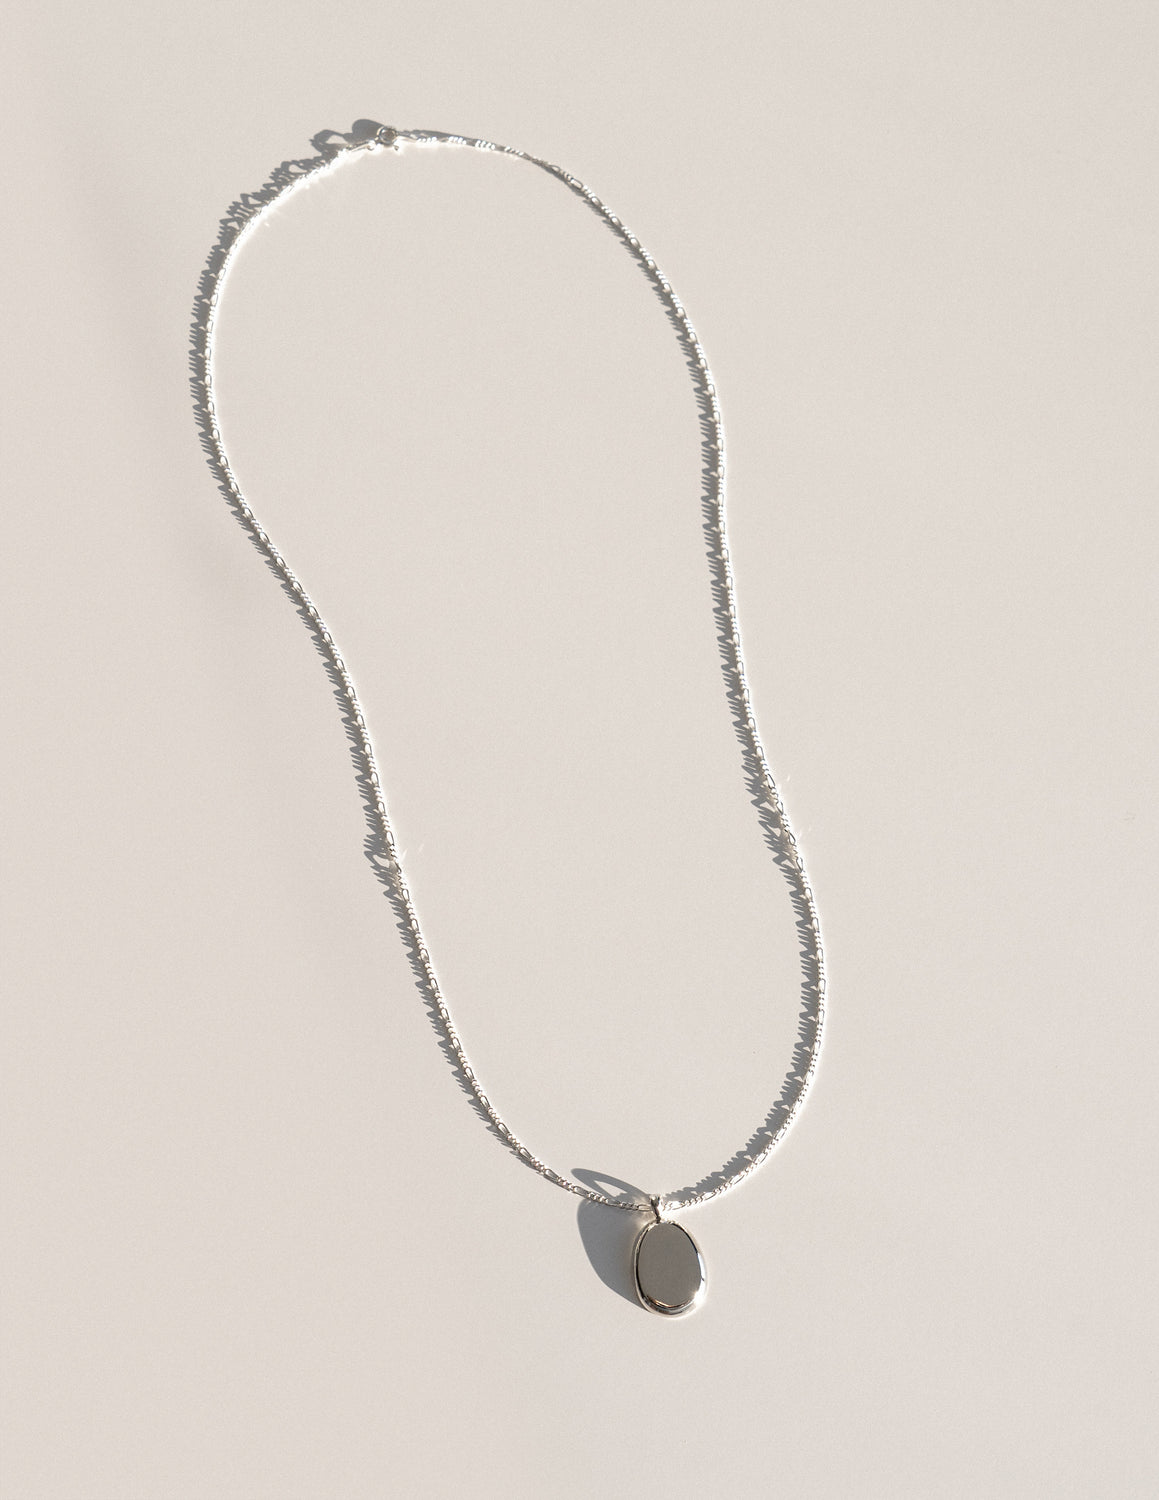 Minimalist Coin Necklace